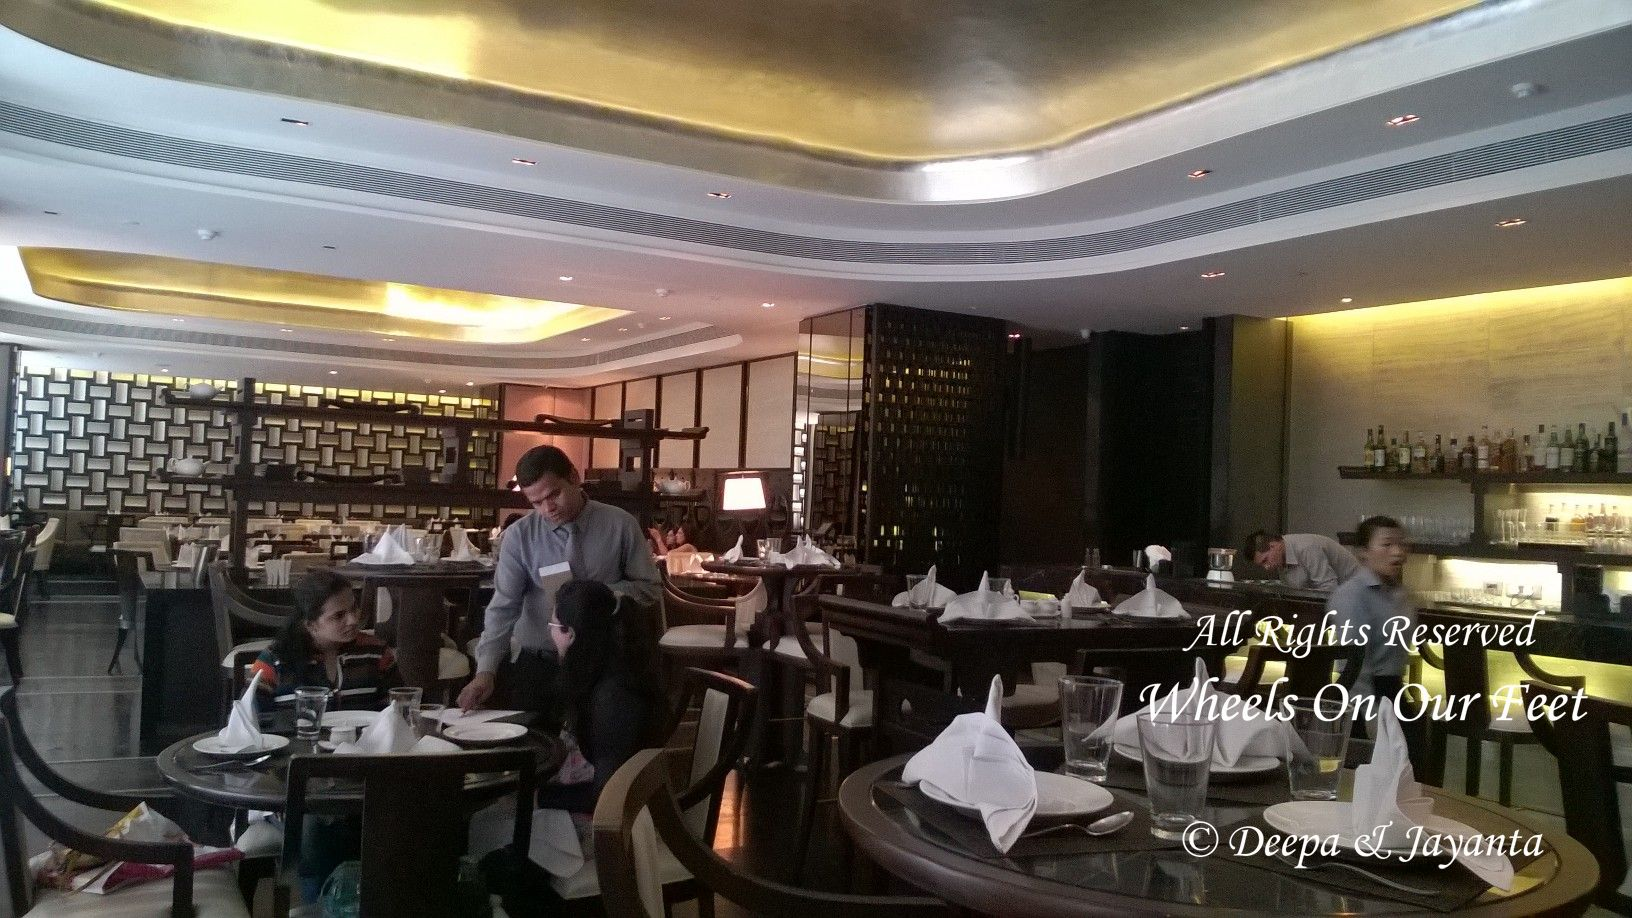 Restaurant Review: China1 in BKC, Mumbai